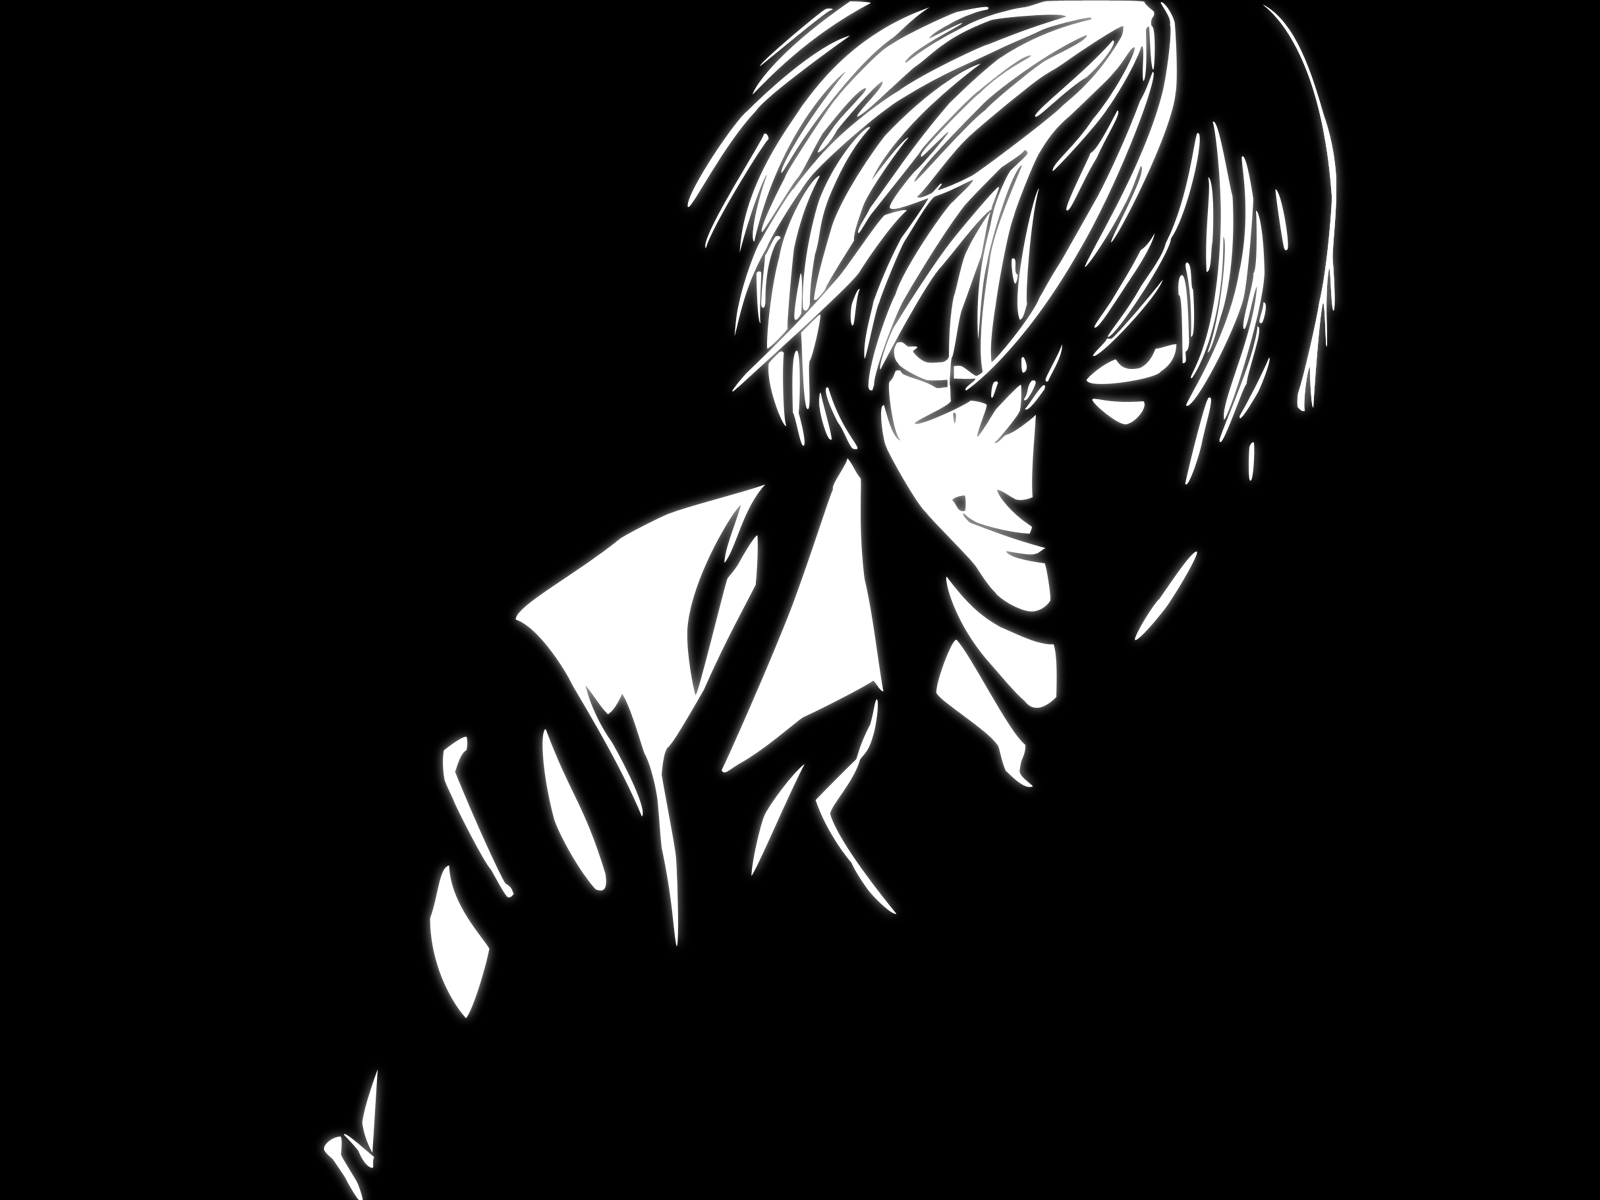 death note images death note hd wallpaper and background photos